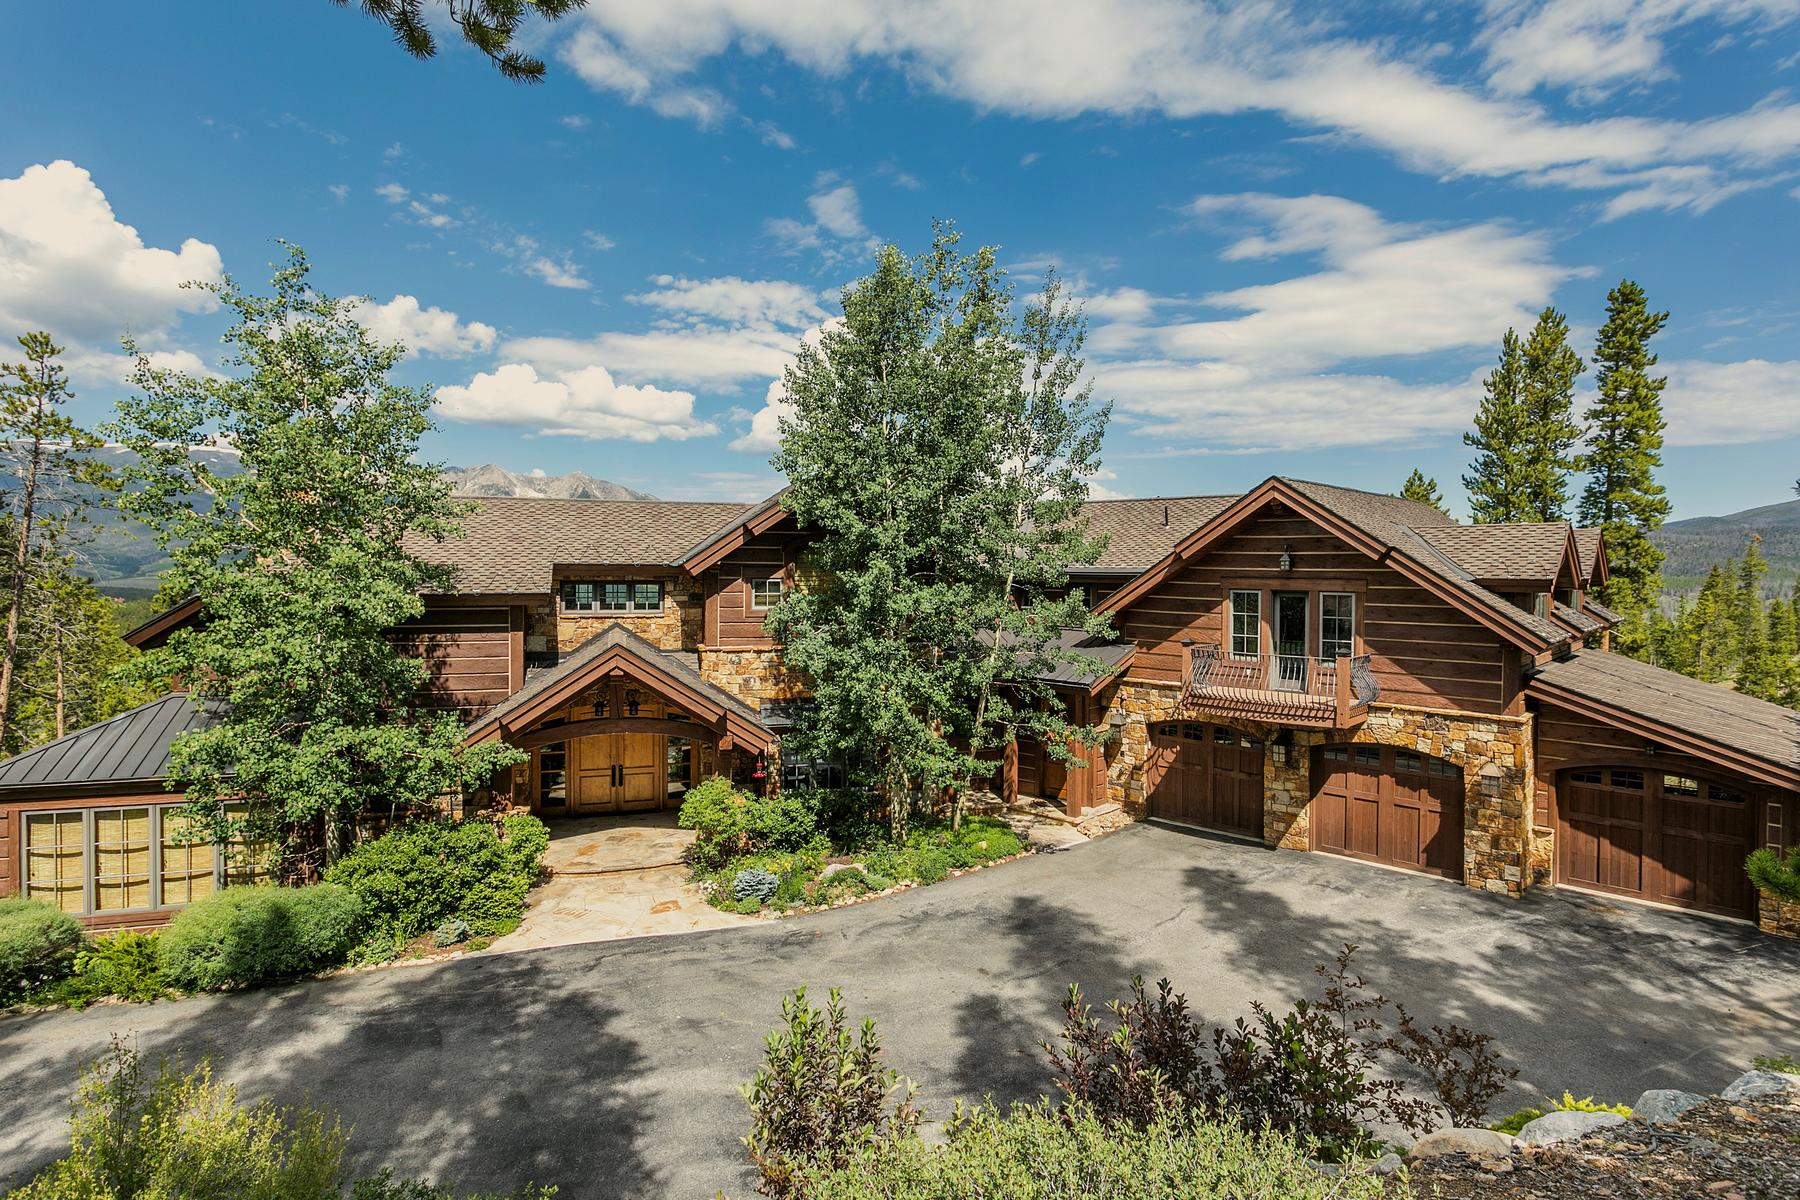 Single Family Home for Active at Mountain Residence Masterpiece with Sweeping Panoramic Views 2329 Estates Drive Breckenridge, Colorado 80424 United States